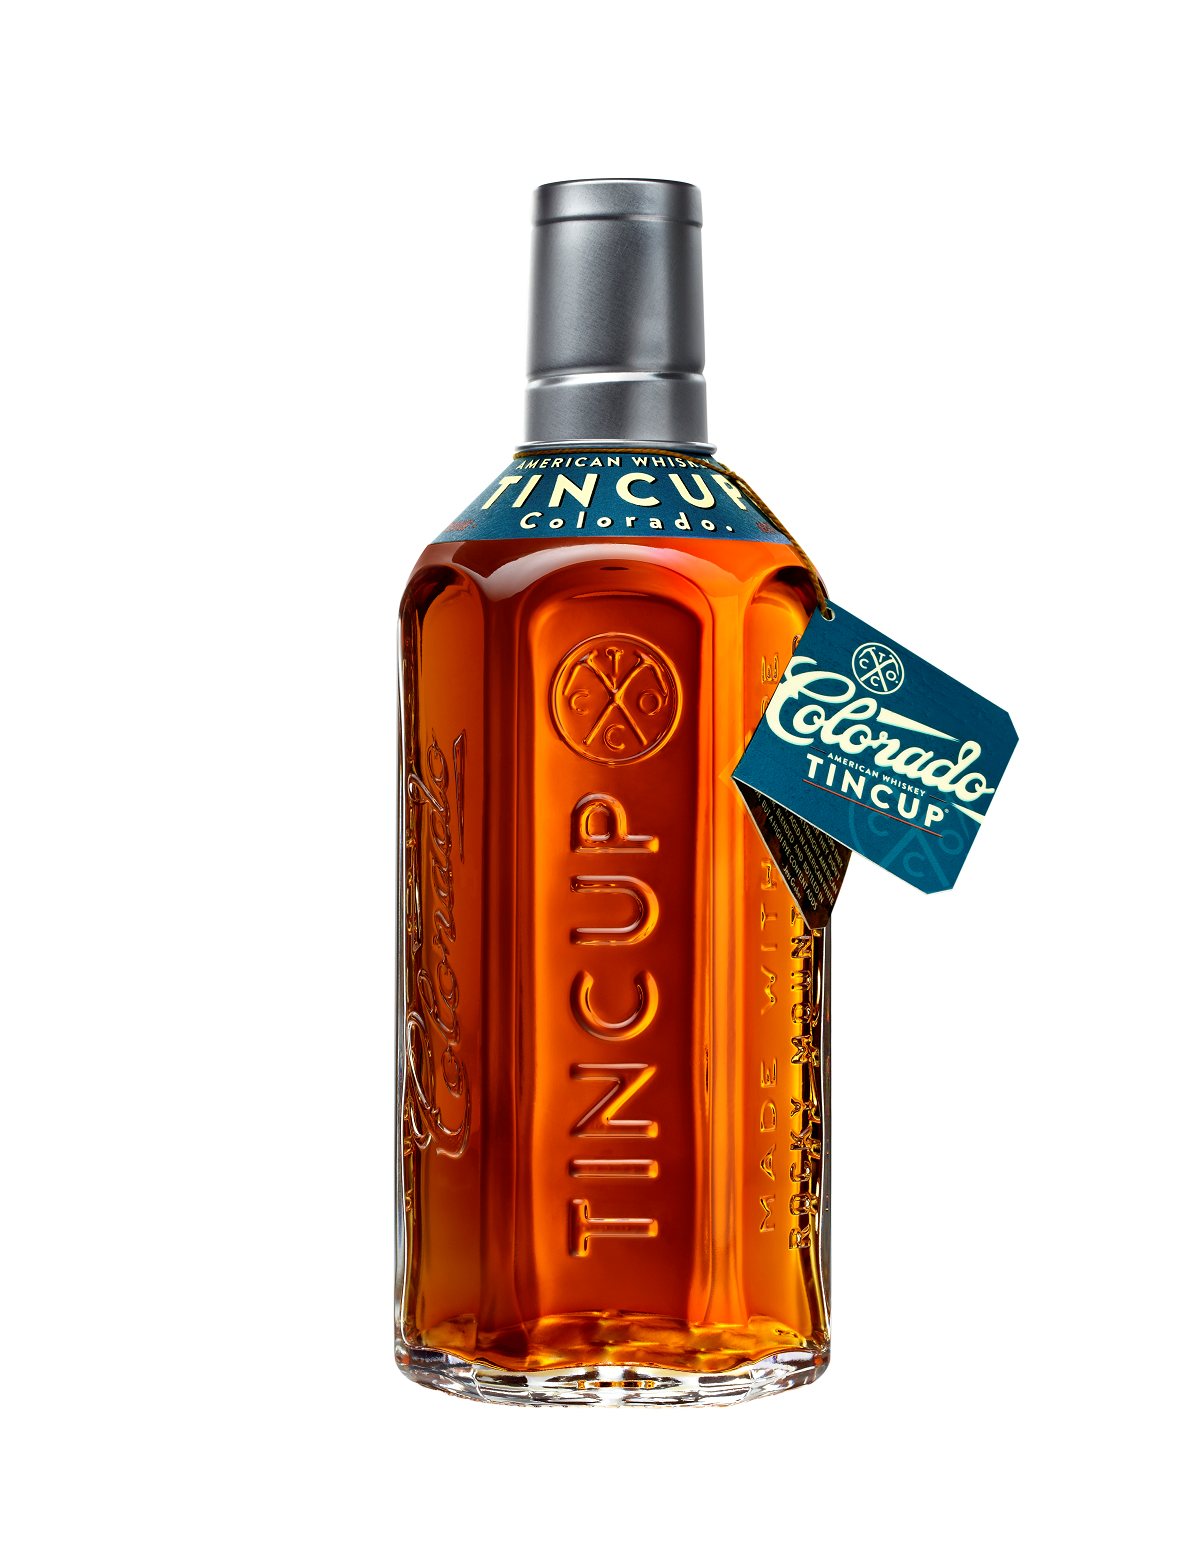 Review Tincup American Whiskey Drinkhacker